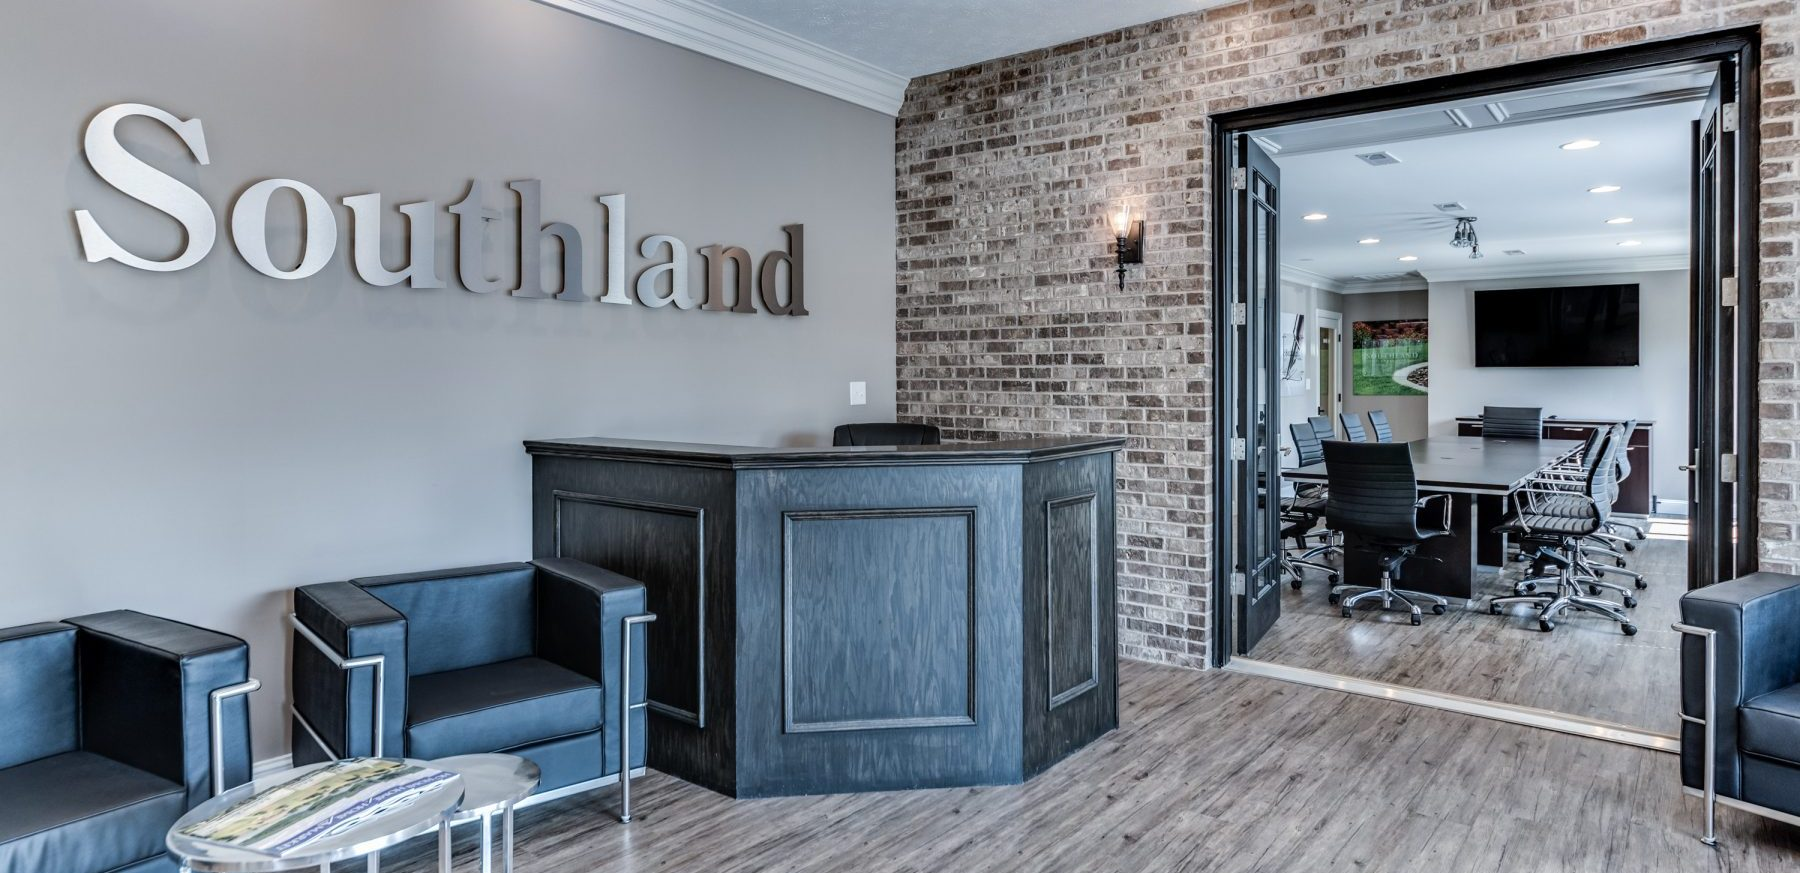 SOUTHLAND LOBBY